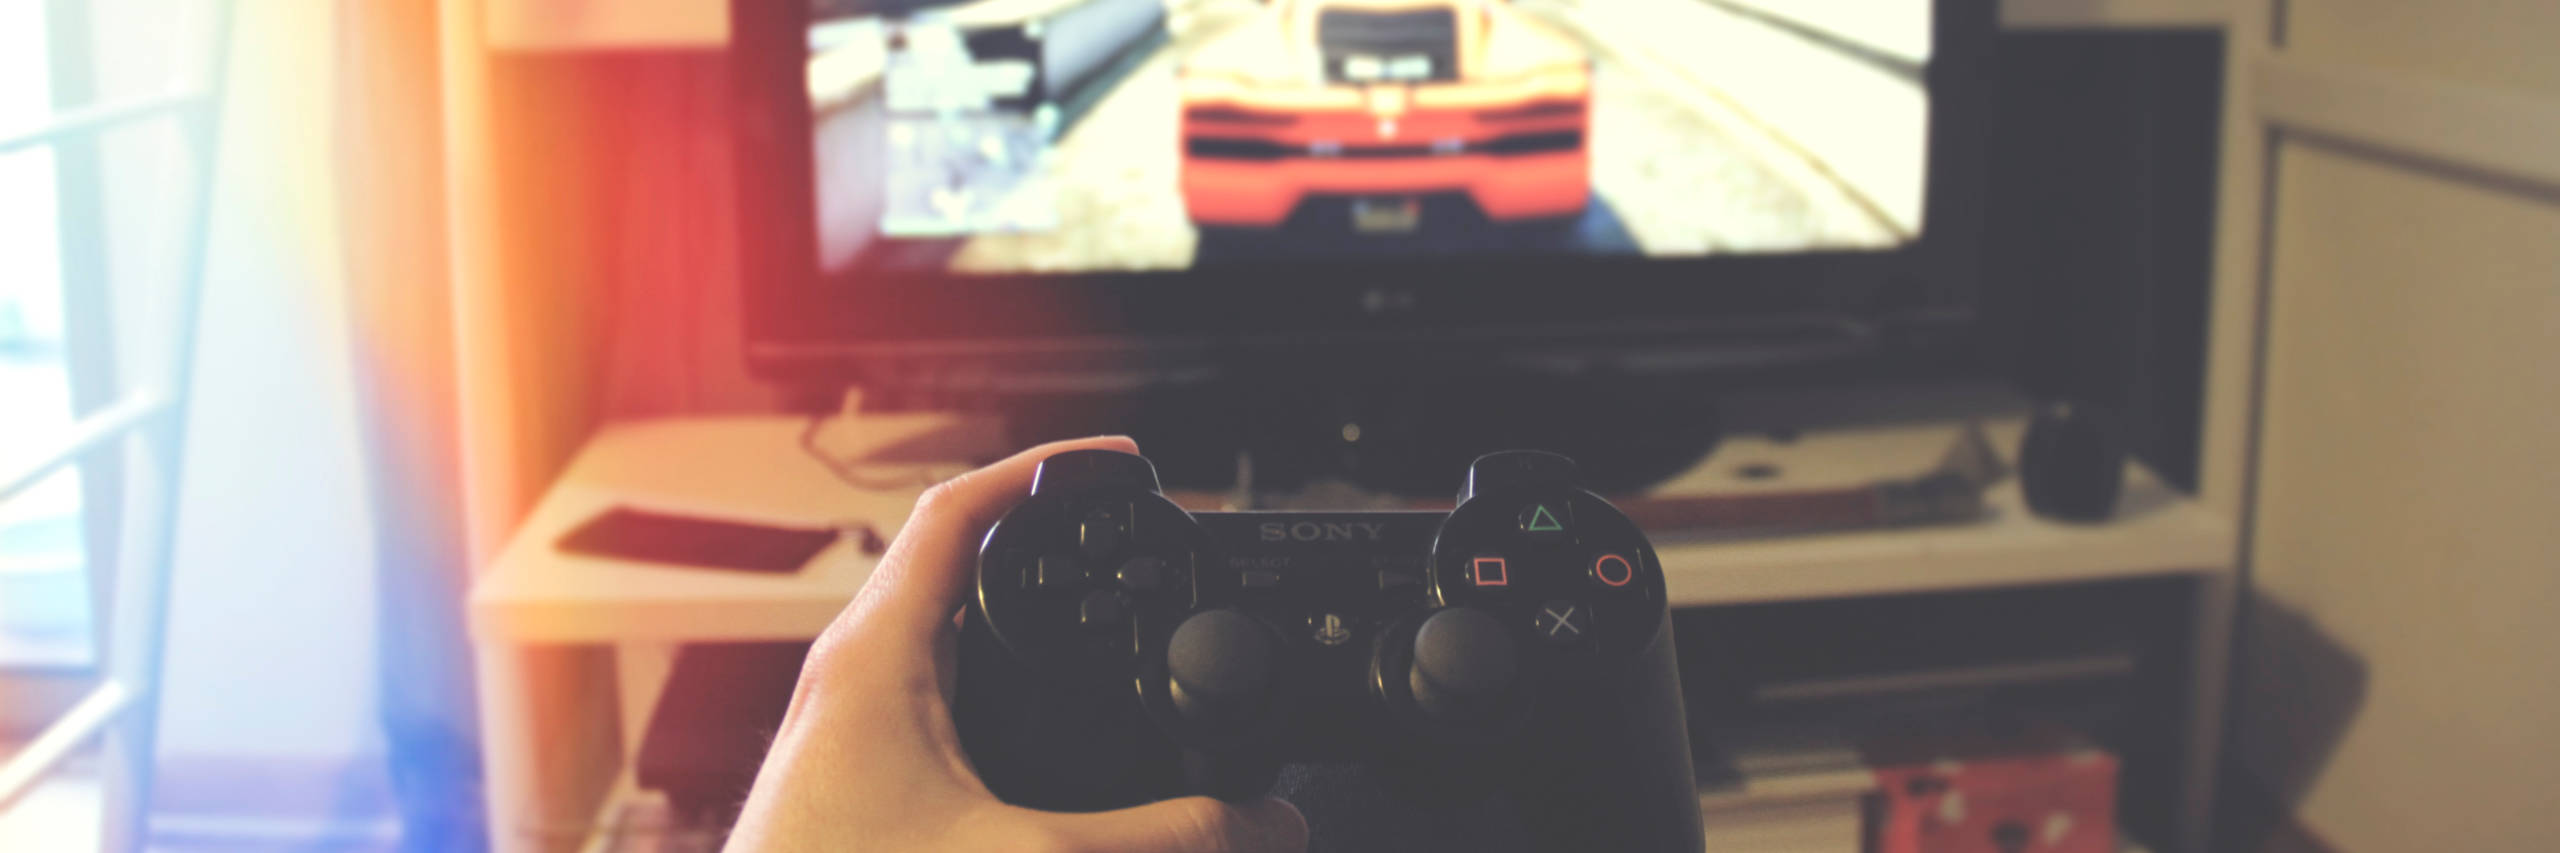 Hand holding a PS2 controller, with TV in the background.